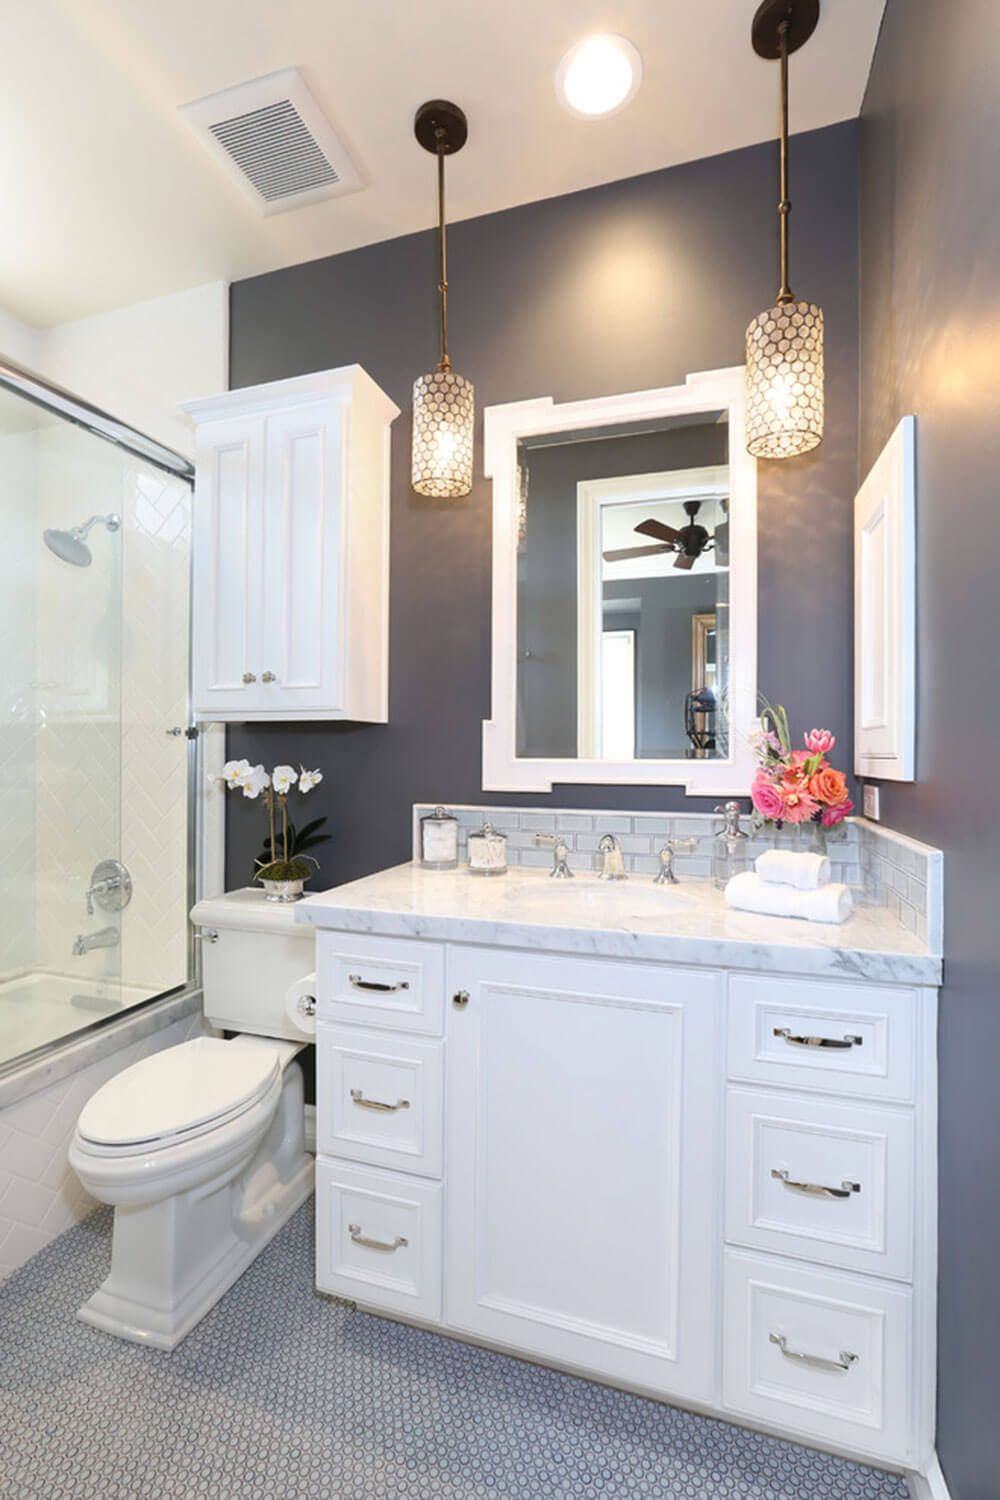 Perfect Uncluttered Color Scheme In Dark Gray And White